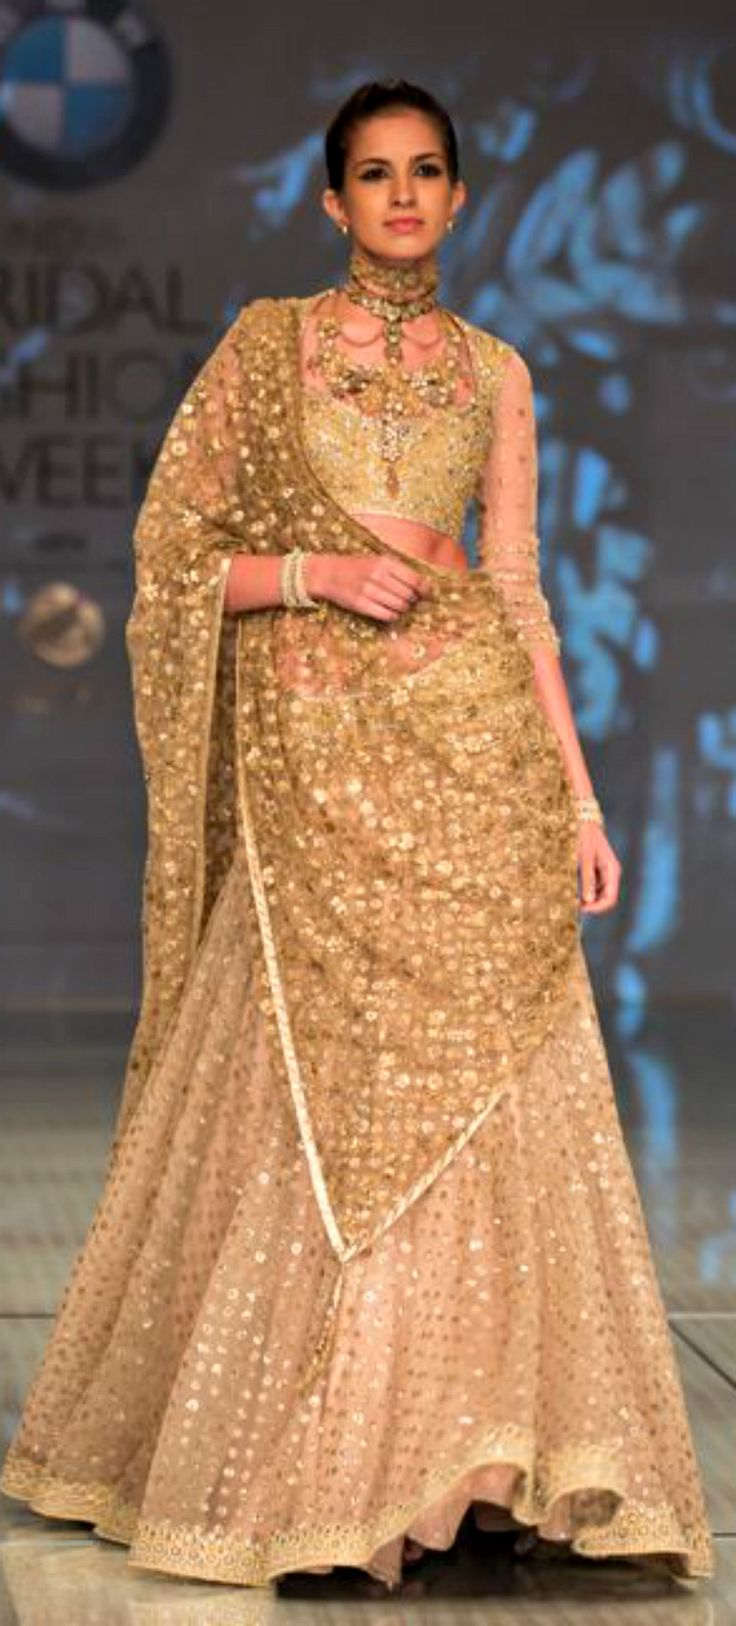 The most spoken thing about an Indian wedding is, well, food! We are Indians! But that is not what I have in mind. I'm talking about wedding fashion clothing. Here are four astonishing golden bridal lehenga designs to make yours for your wedding day!